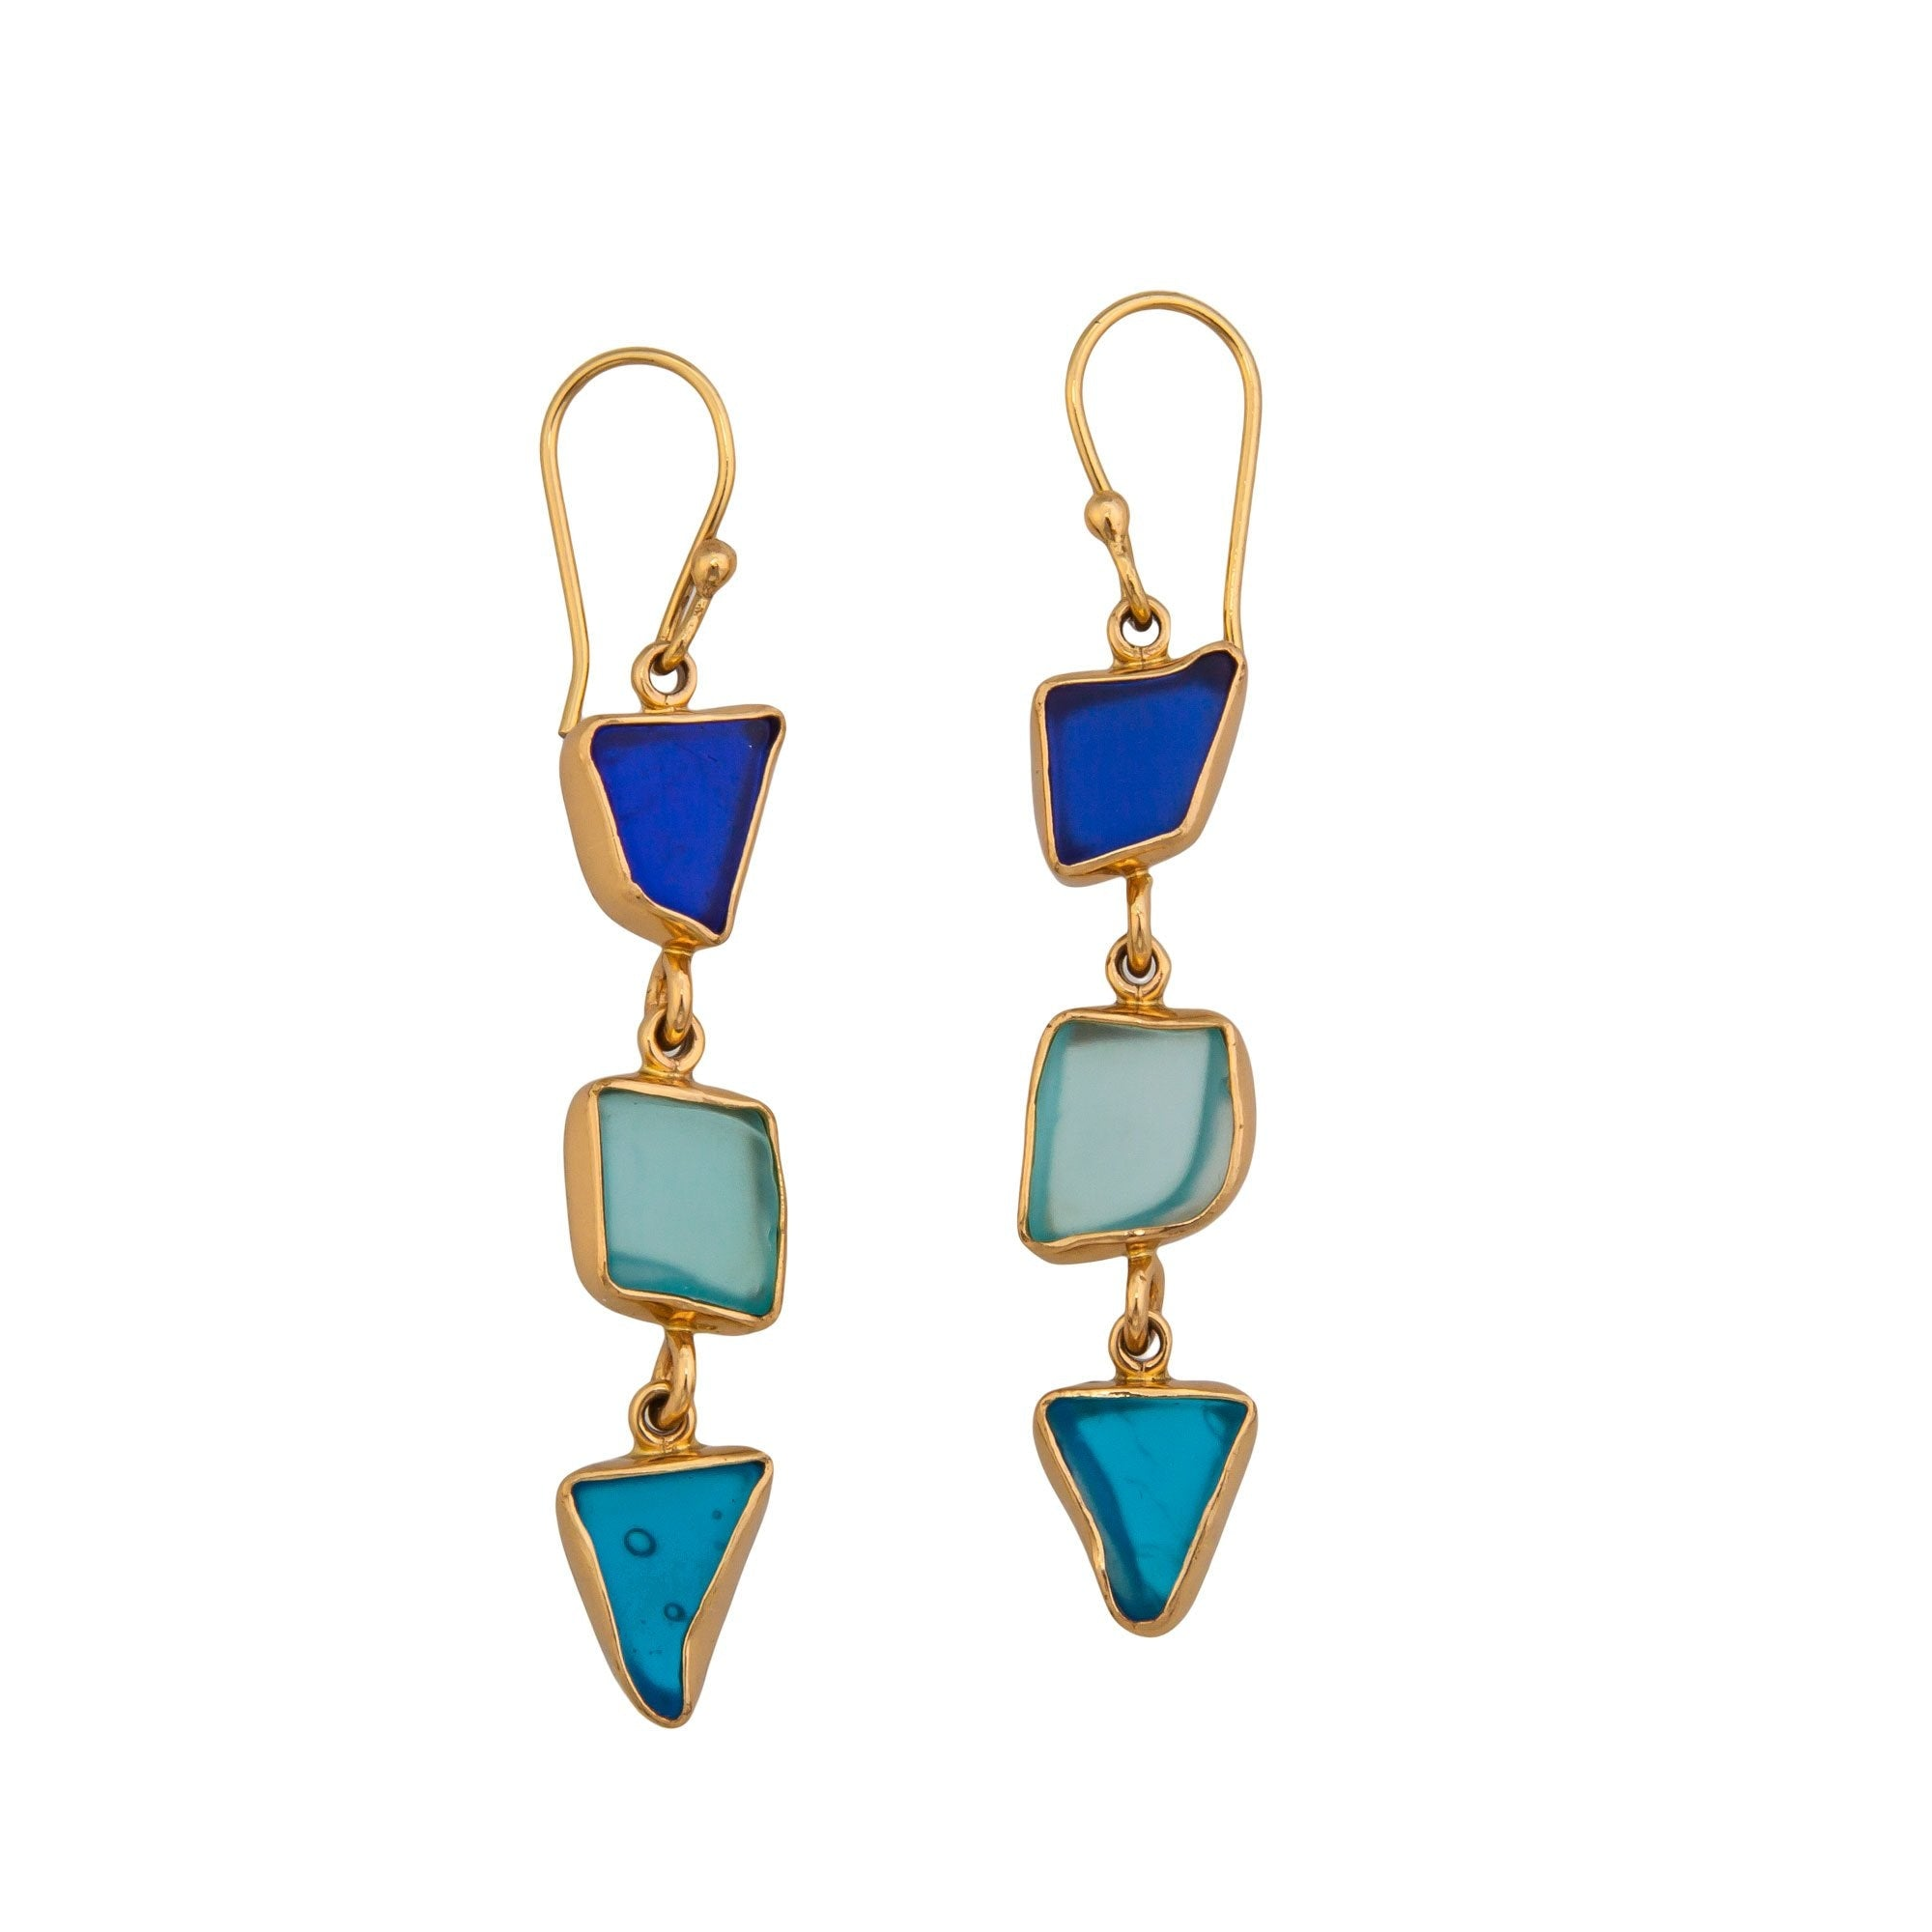 Alchemia Recycled Multi-Color Glass Earrings | Charles Albert Jewelry